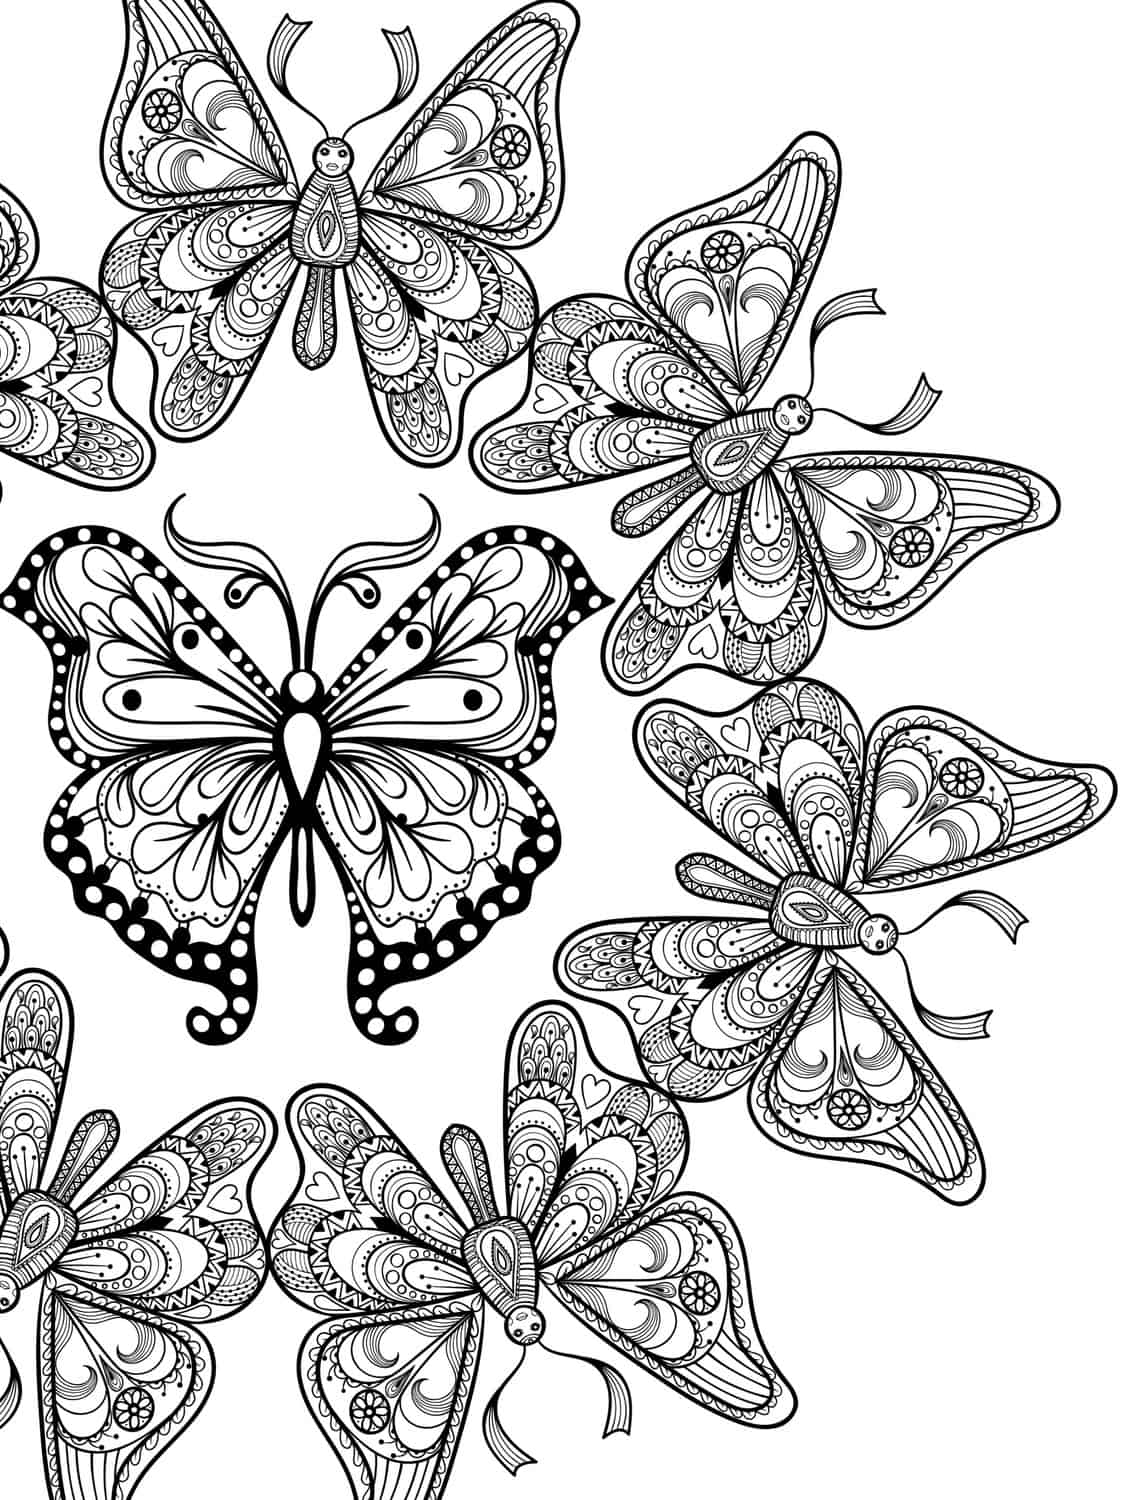 Coloring Pages Insects Free Coloring Pages Download | Xsibe insect ...